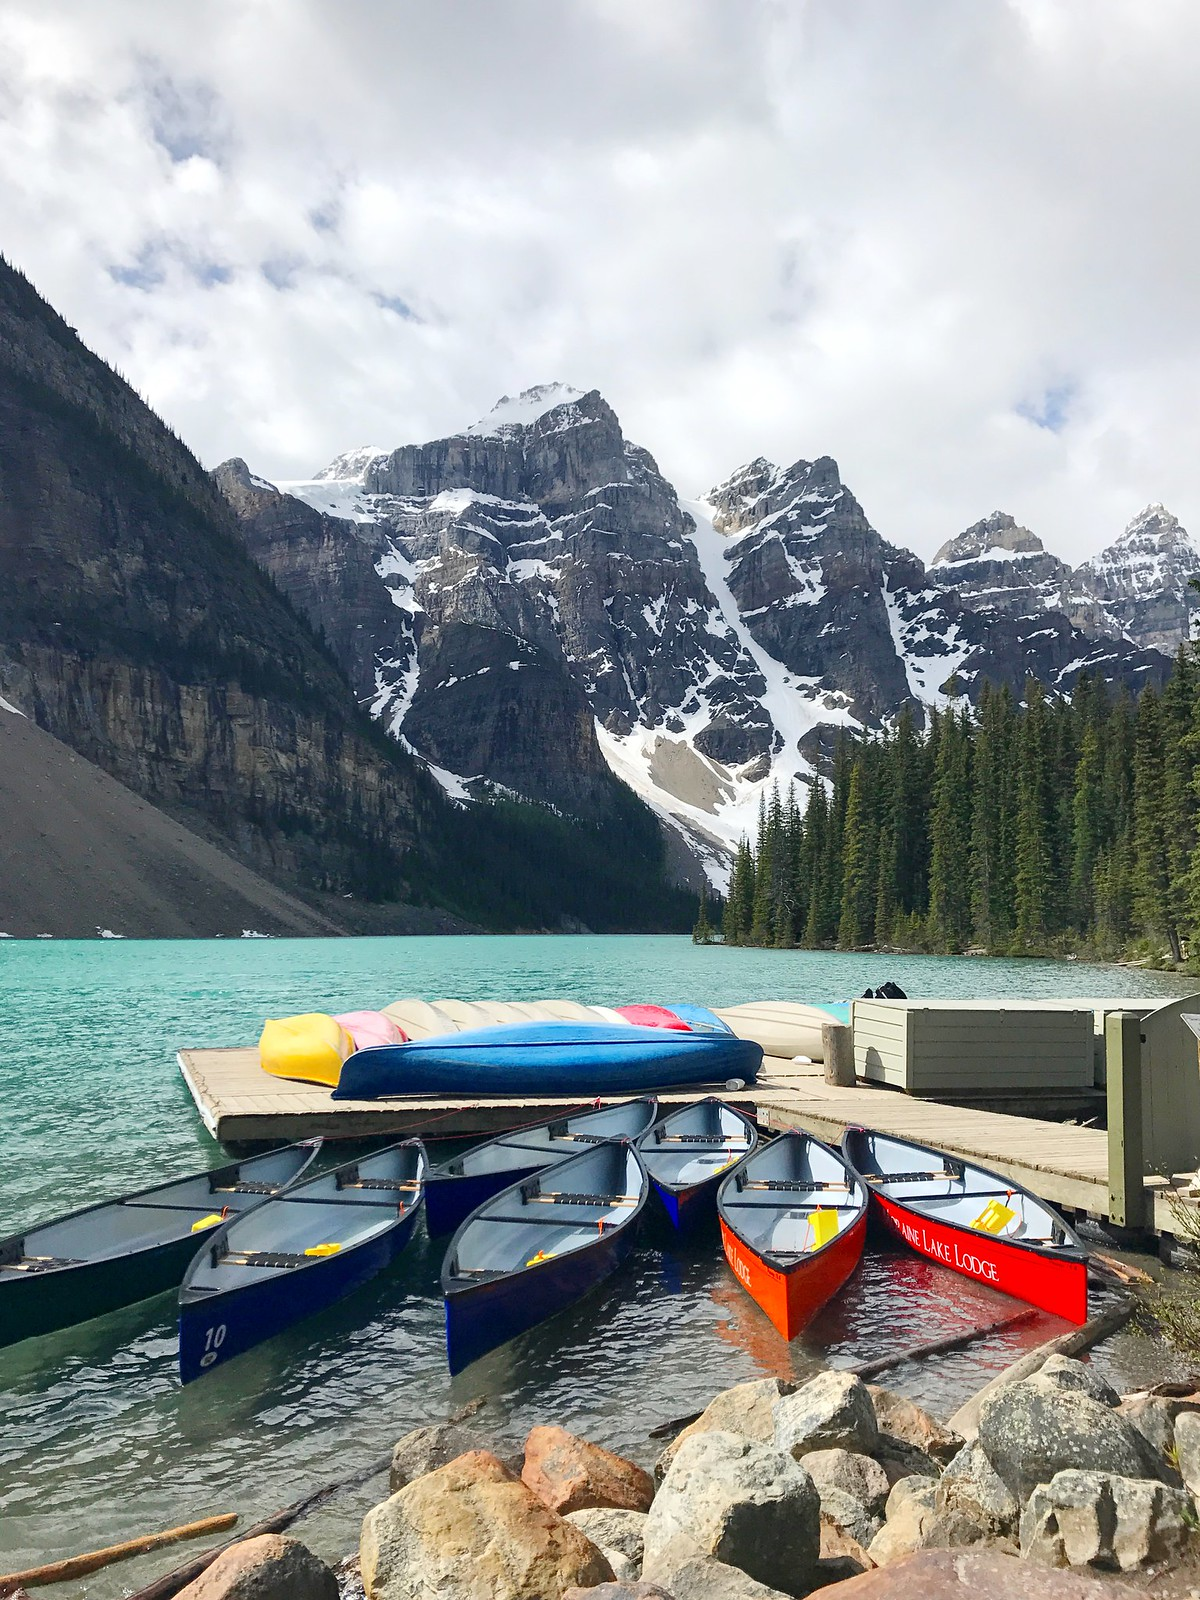 Canoes at Moraine Lake, Alberta